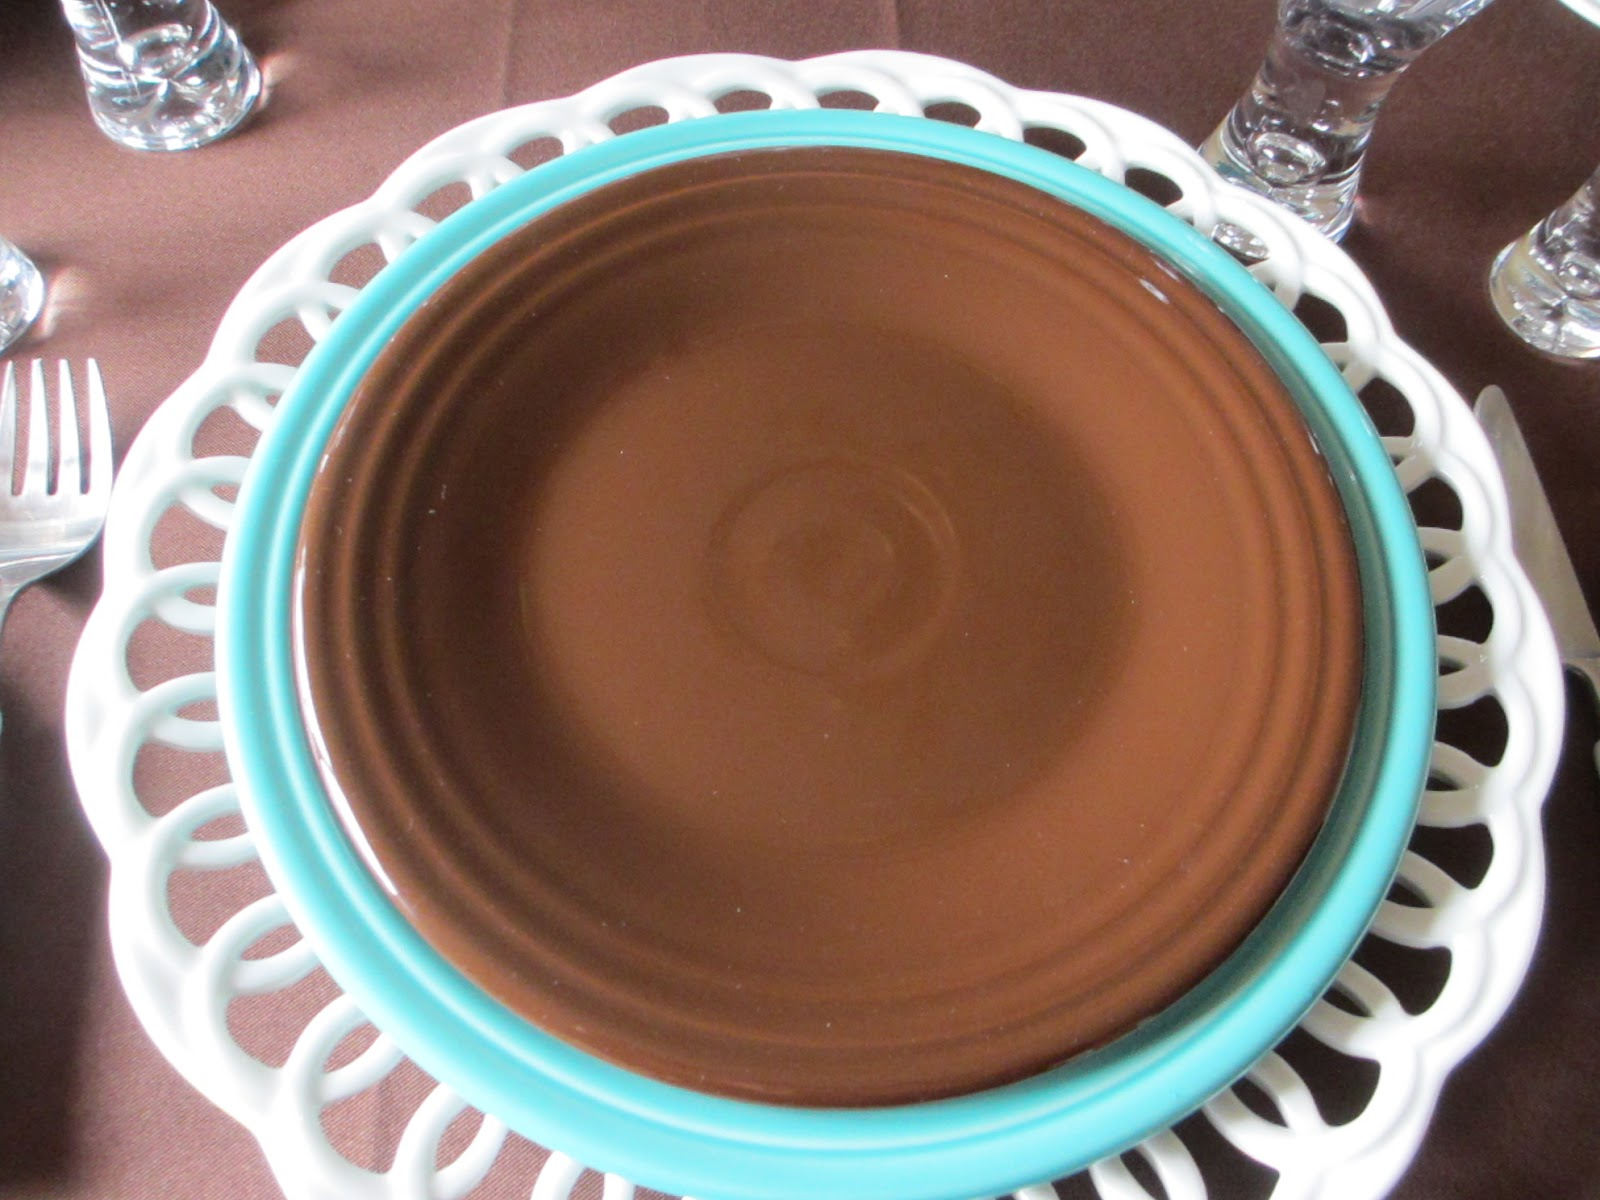 Chocolate Fiesta Luncheon Plate & The Welcomed Guest: Chocolate and Turquoise Fiesta Table